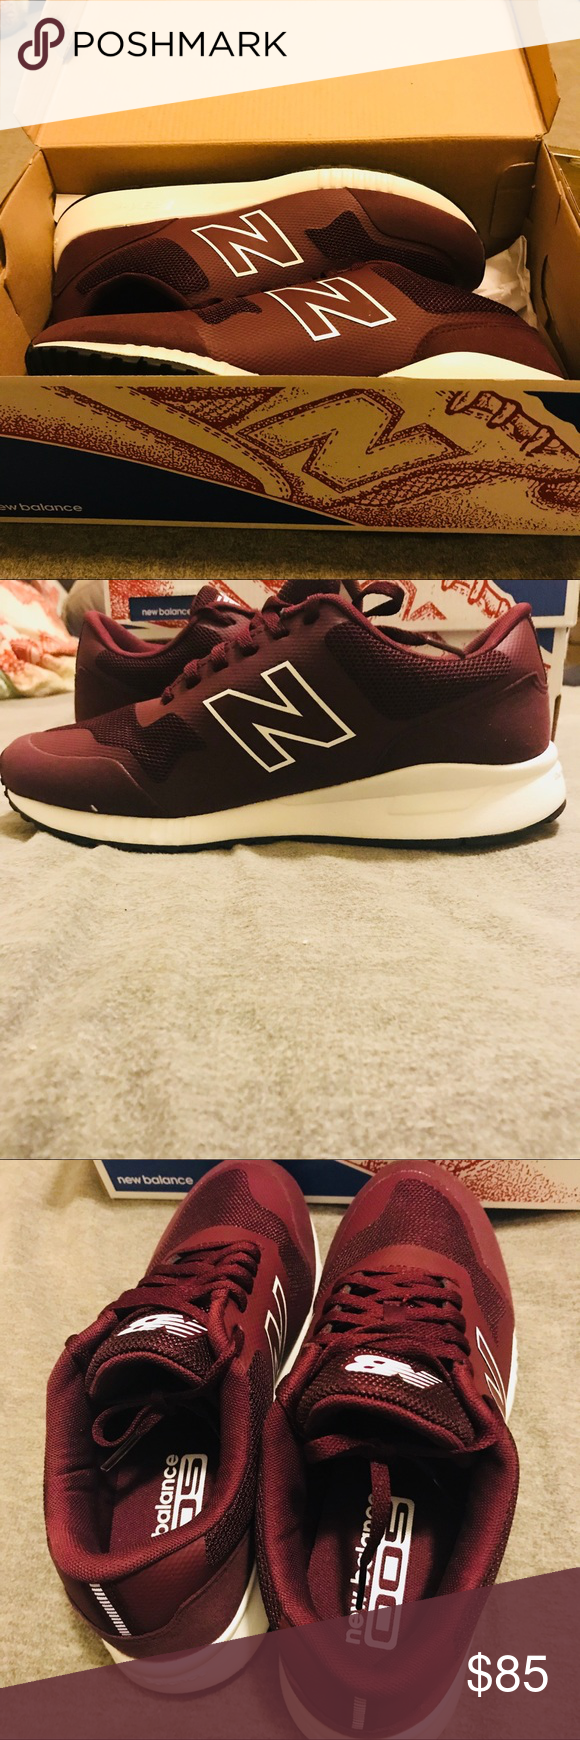 Men's New Balance 005 Brand new with box shoes! New Balance Shoes Sneakers